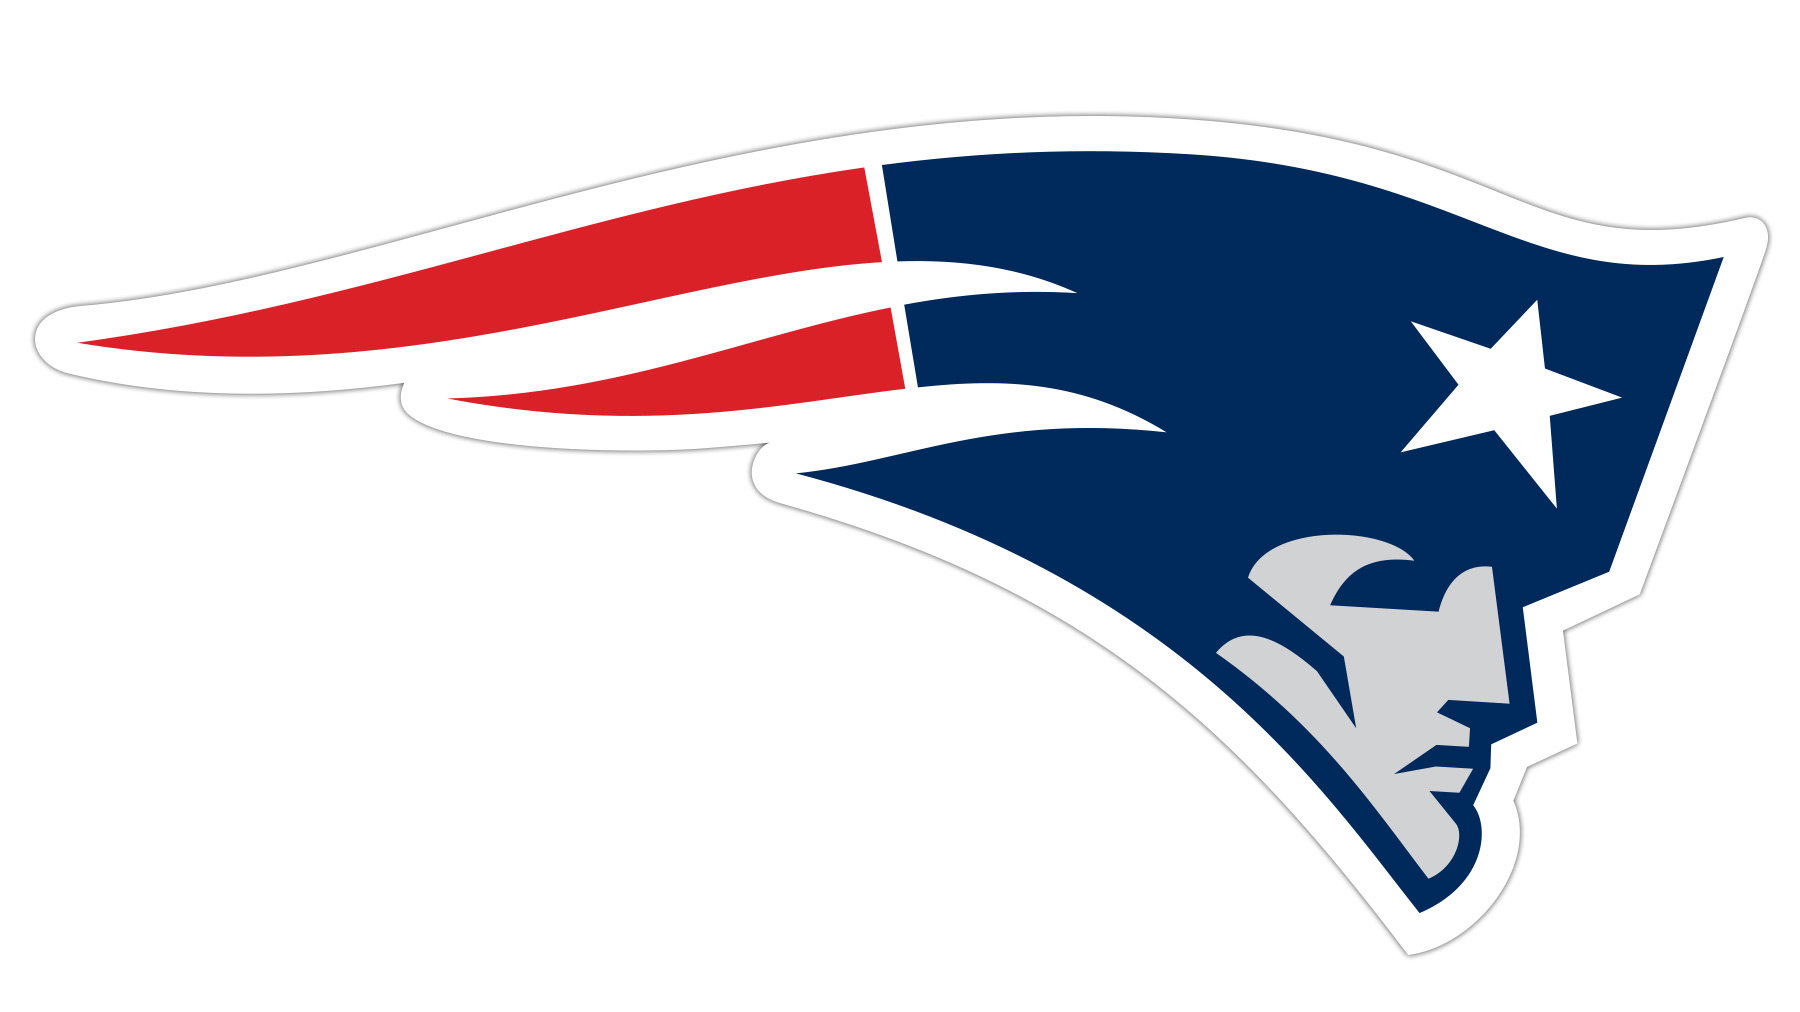 Super bowl ring clipart patriots picture black and white download Official website of the New England Patriots picture black and white download